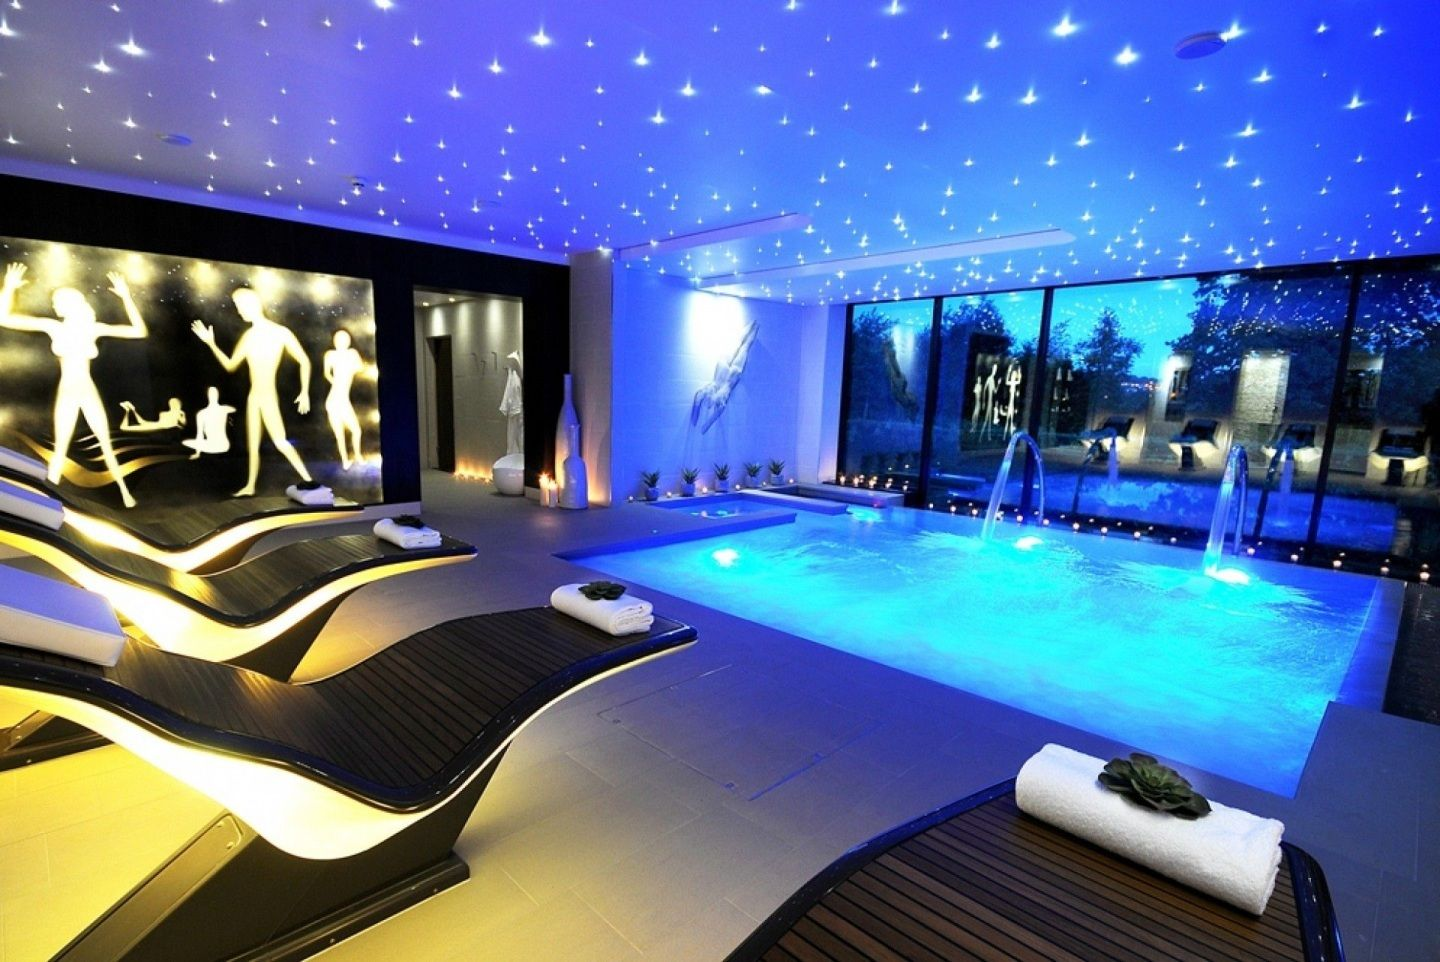 Home Design Luxury Design Of House With Swimming Pool Inside Large Houses With Pools Interi Indoor Swimming Pool Design Indoor Pool Design Swimming Pool Lights